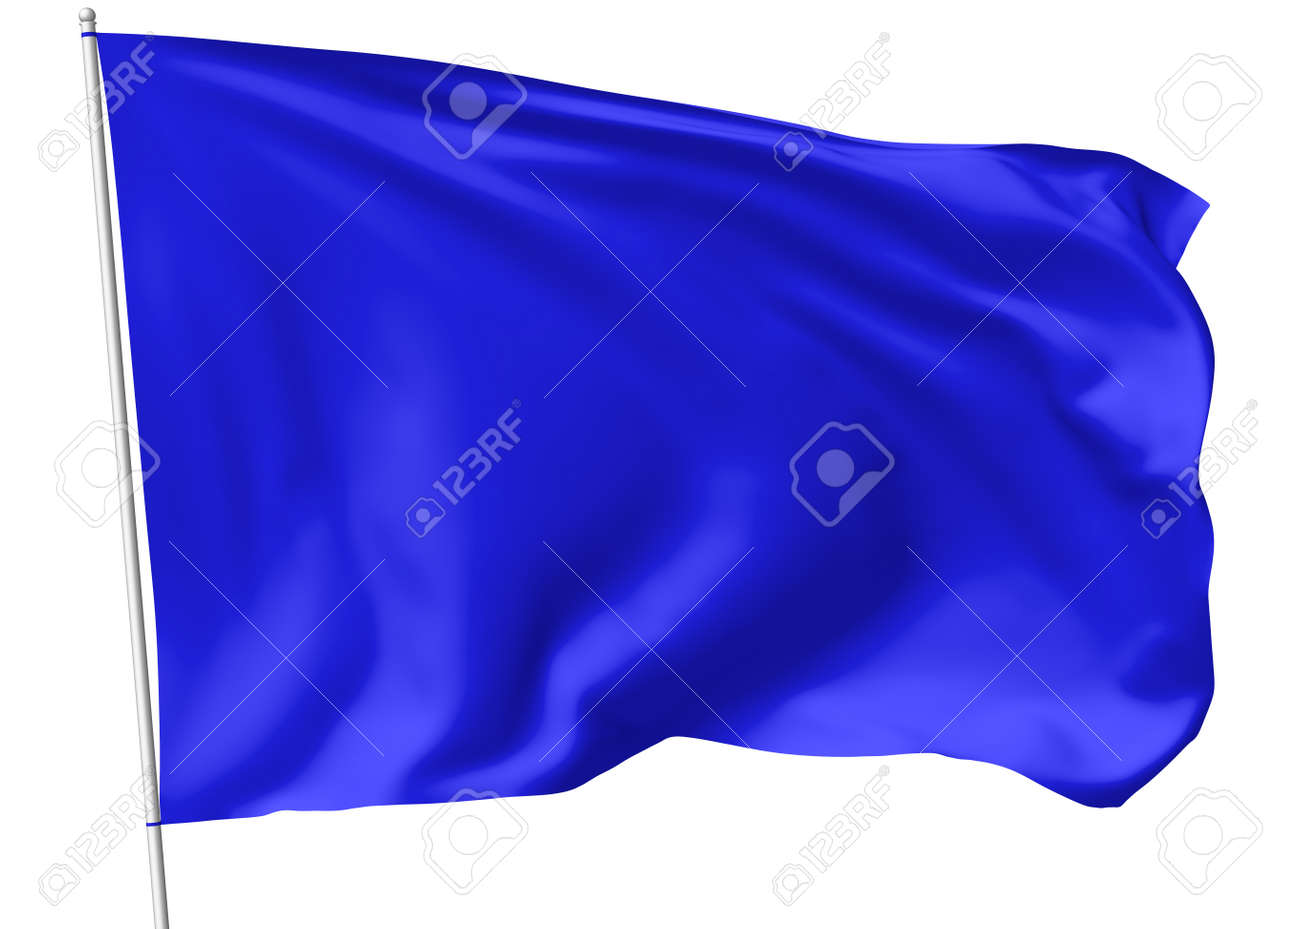 Blue flag on flagpole flying in the wind isolated on white, 3d illustration - 43888308